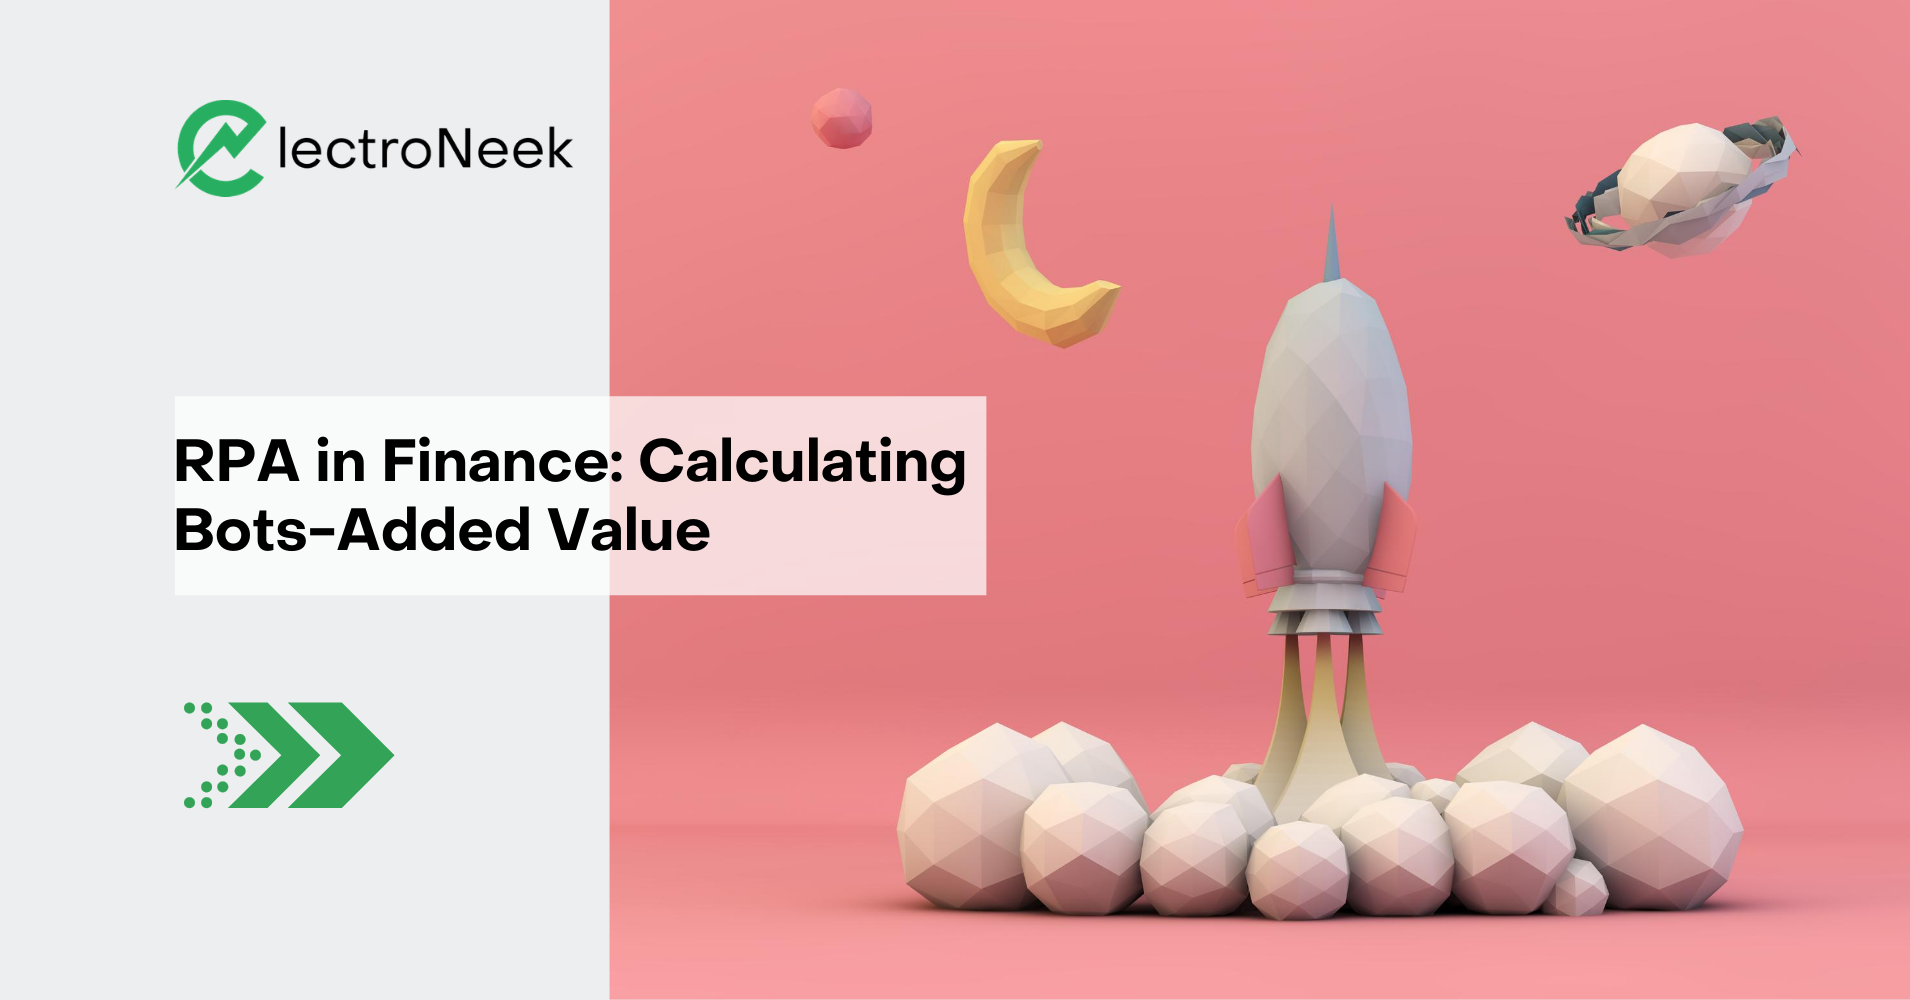 RPA in Finance: Calculating Bots-Added Value